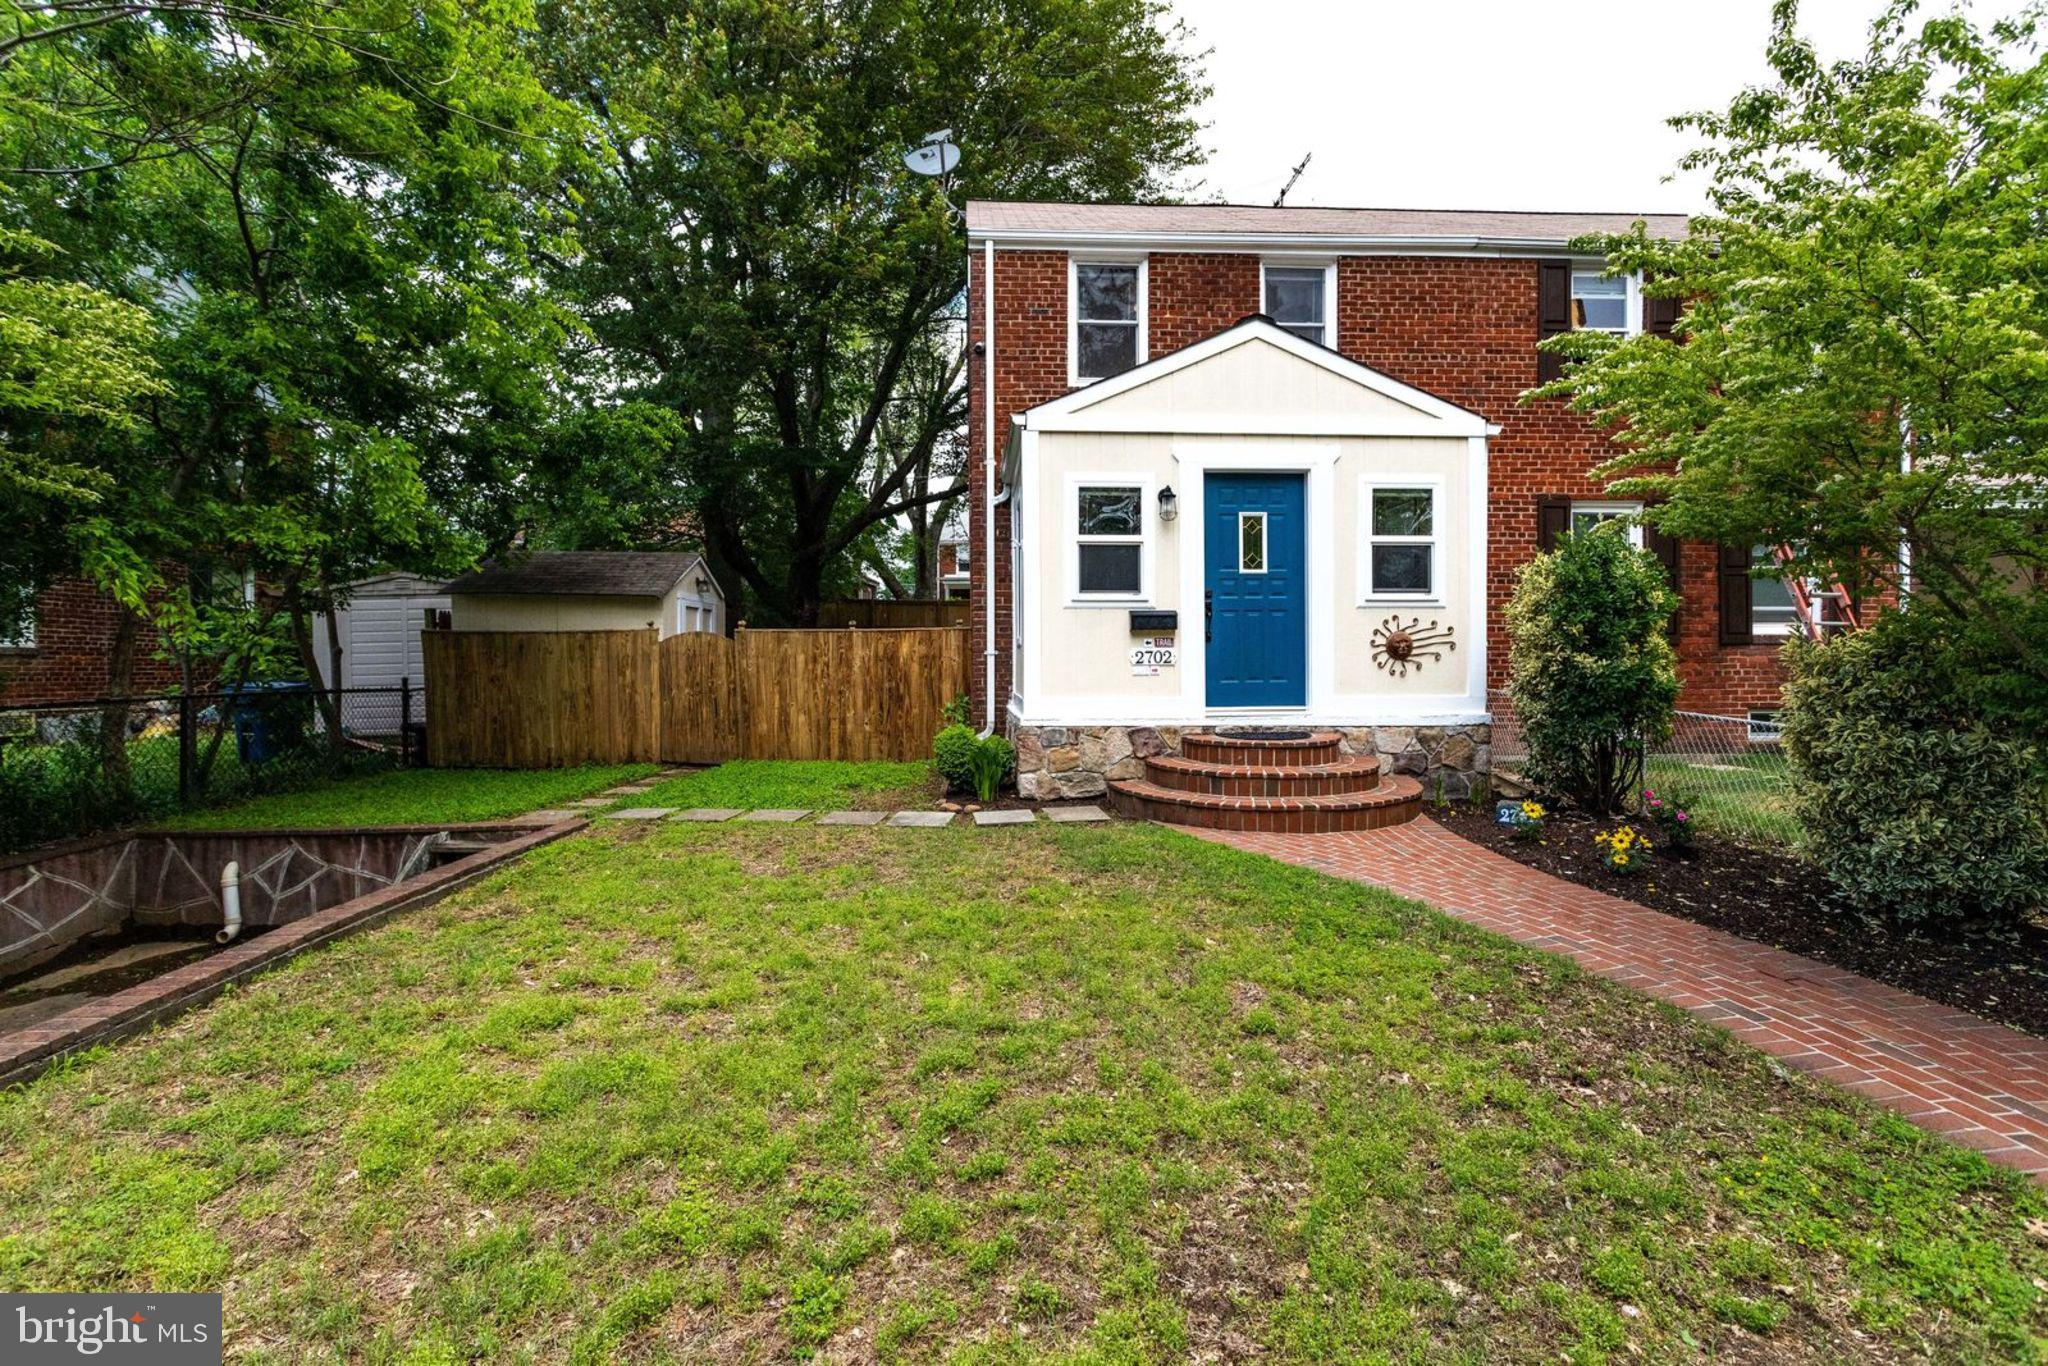 OPEN Sat & Sun 2-4. Perfectly sized home, expanded, open & updated kitchen walks out to mostly flat & fully fenced yard, hardwood floors, custom built-ins, and crown molding throughout. Super close walk to Huntington Metro, shops & eateries. EZ commute to National Landing, Old Town & DC! Community-oriented neighborhood in Popular Jefferson Manor which hosts many community events, monthly newsletter & private FB group. A great place to live AND invest for future payoff!  Hurry, won't last!